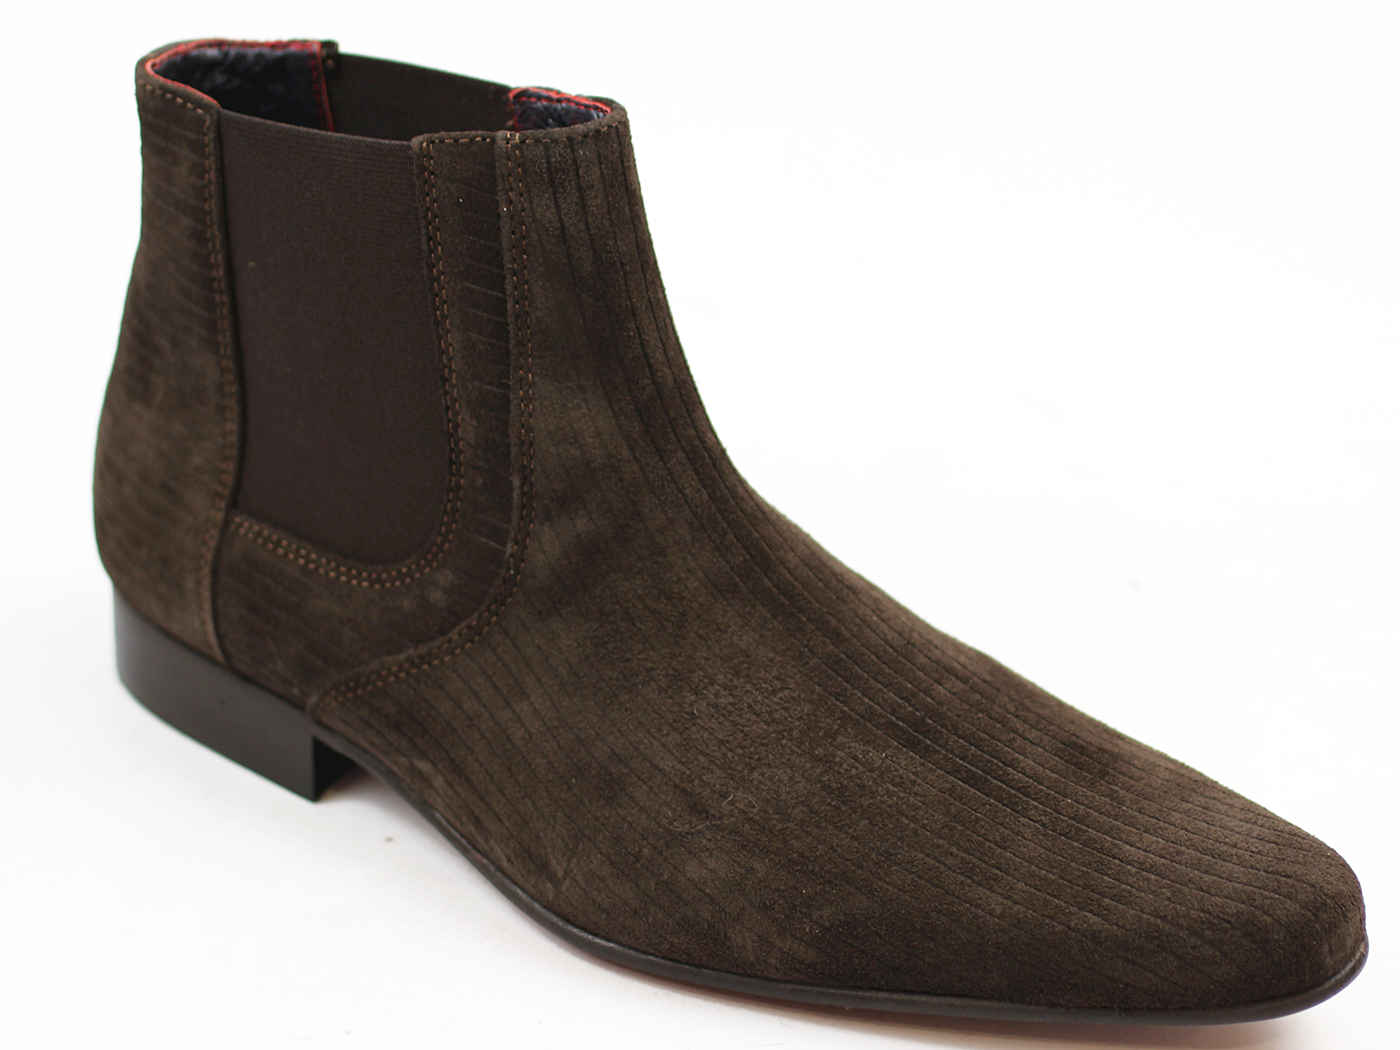 Universal DELICIOUS JUNCTION Mod Chelsea Boots (B)